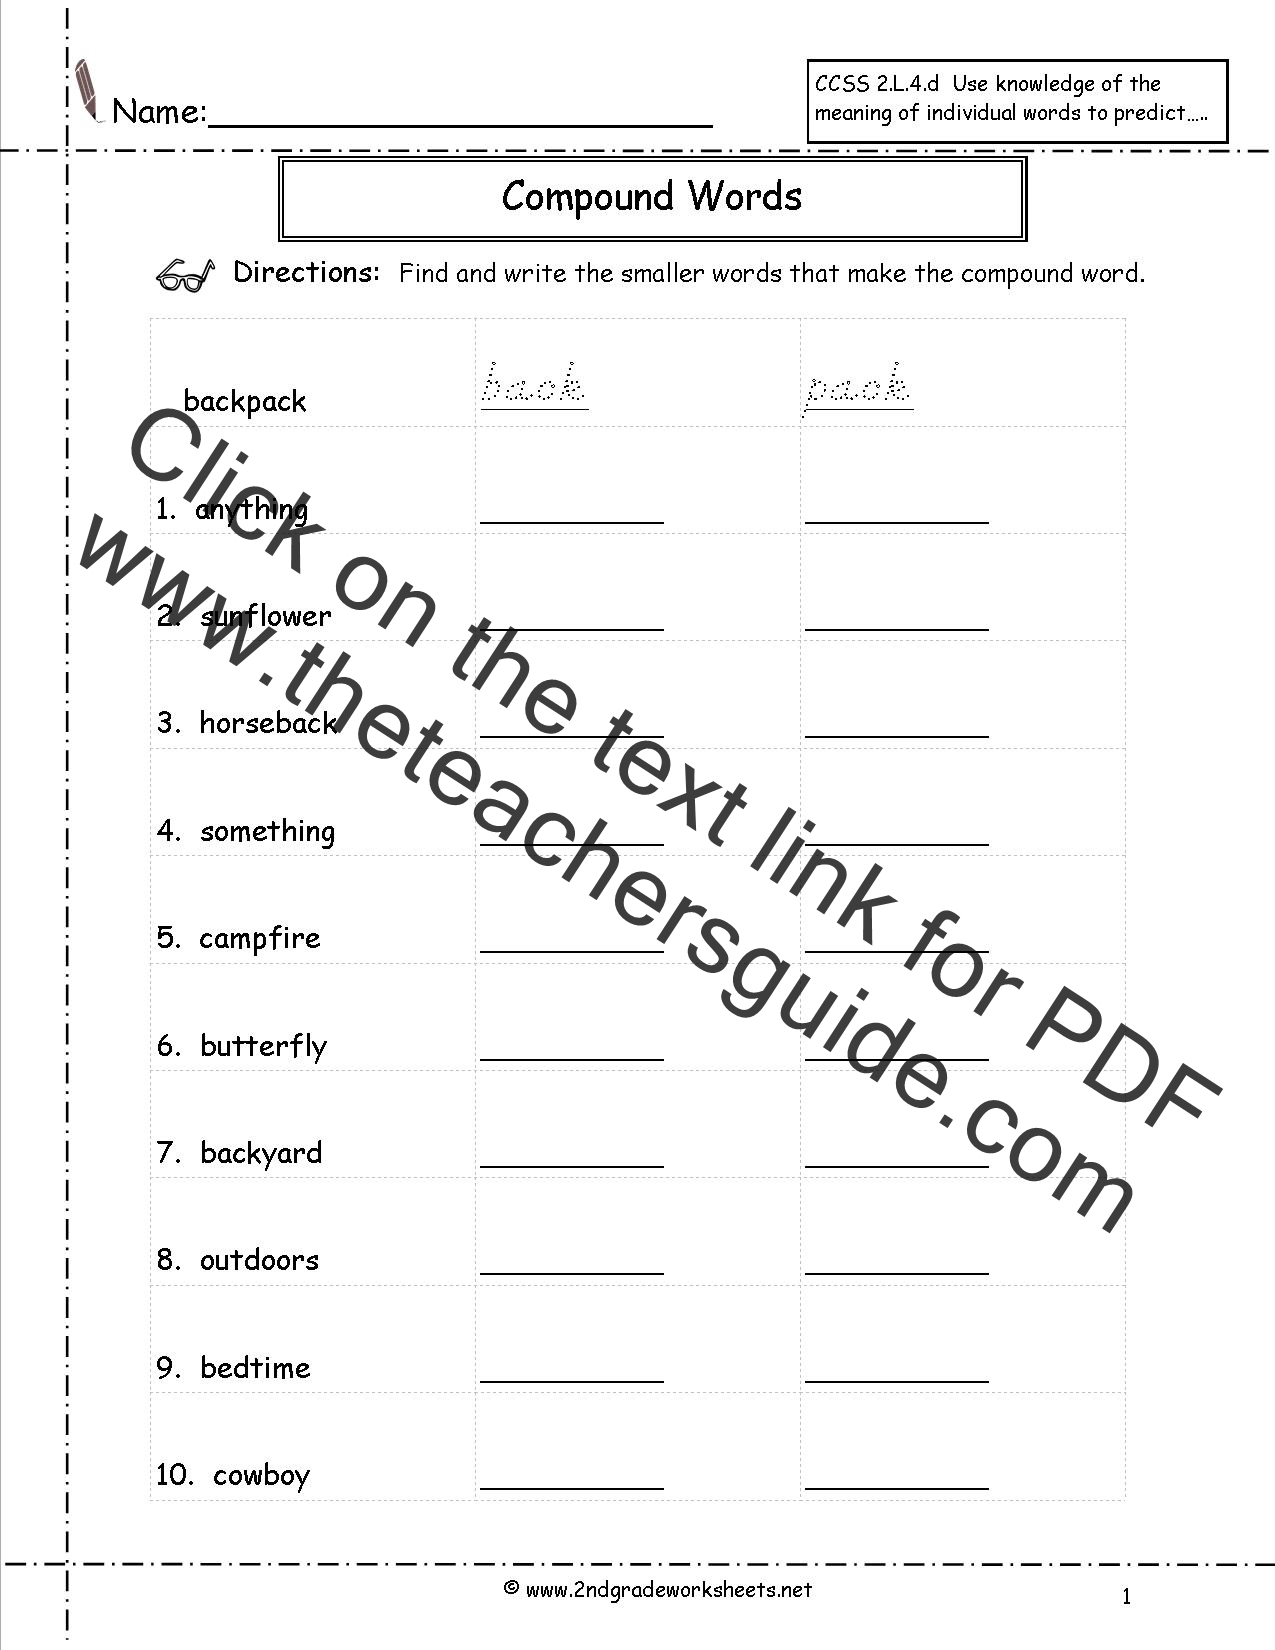 worksheet Language Arts Worksheets 2nd Grade free languagegrammar worksheets and printouts compound words worksheets